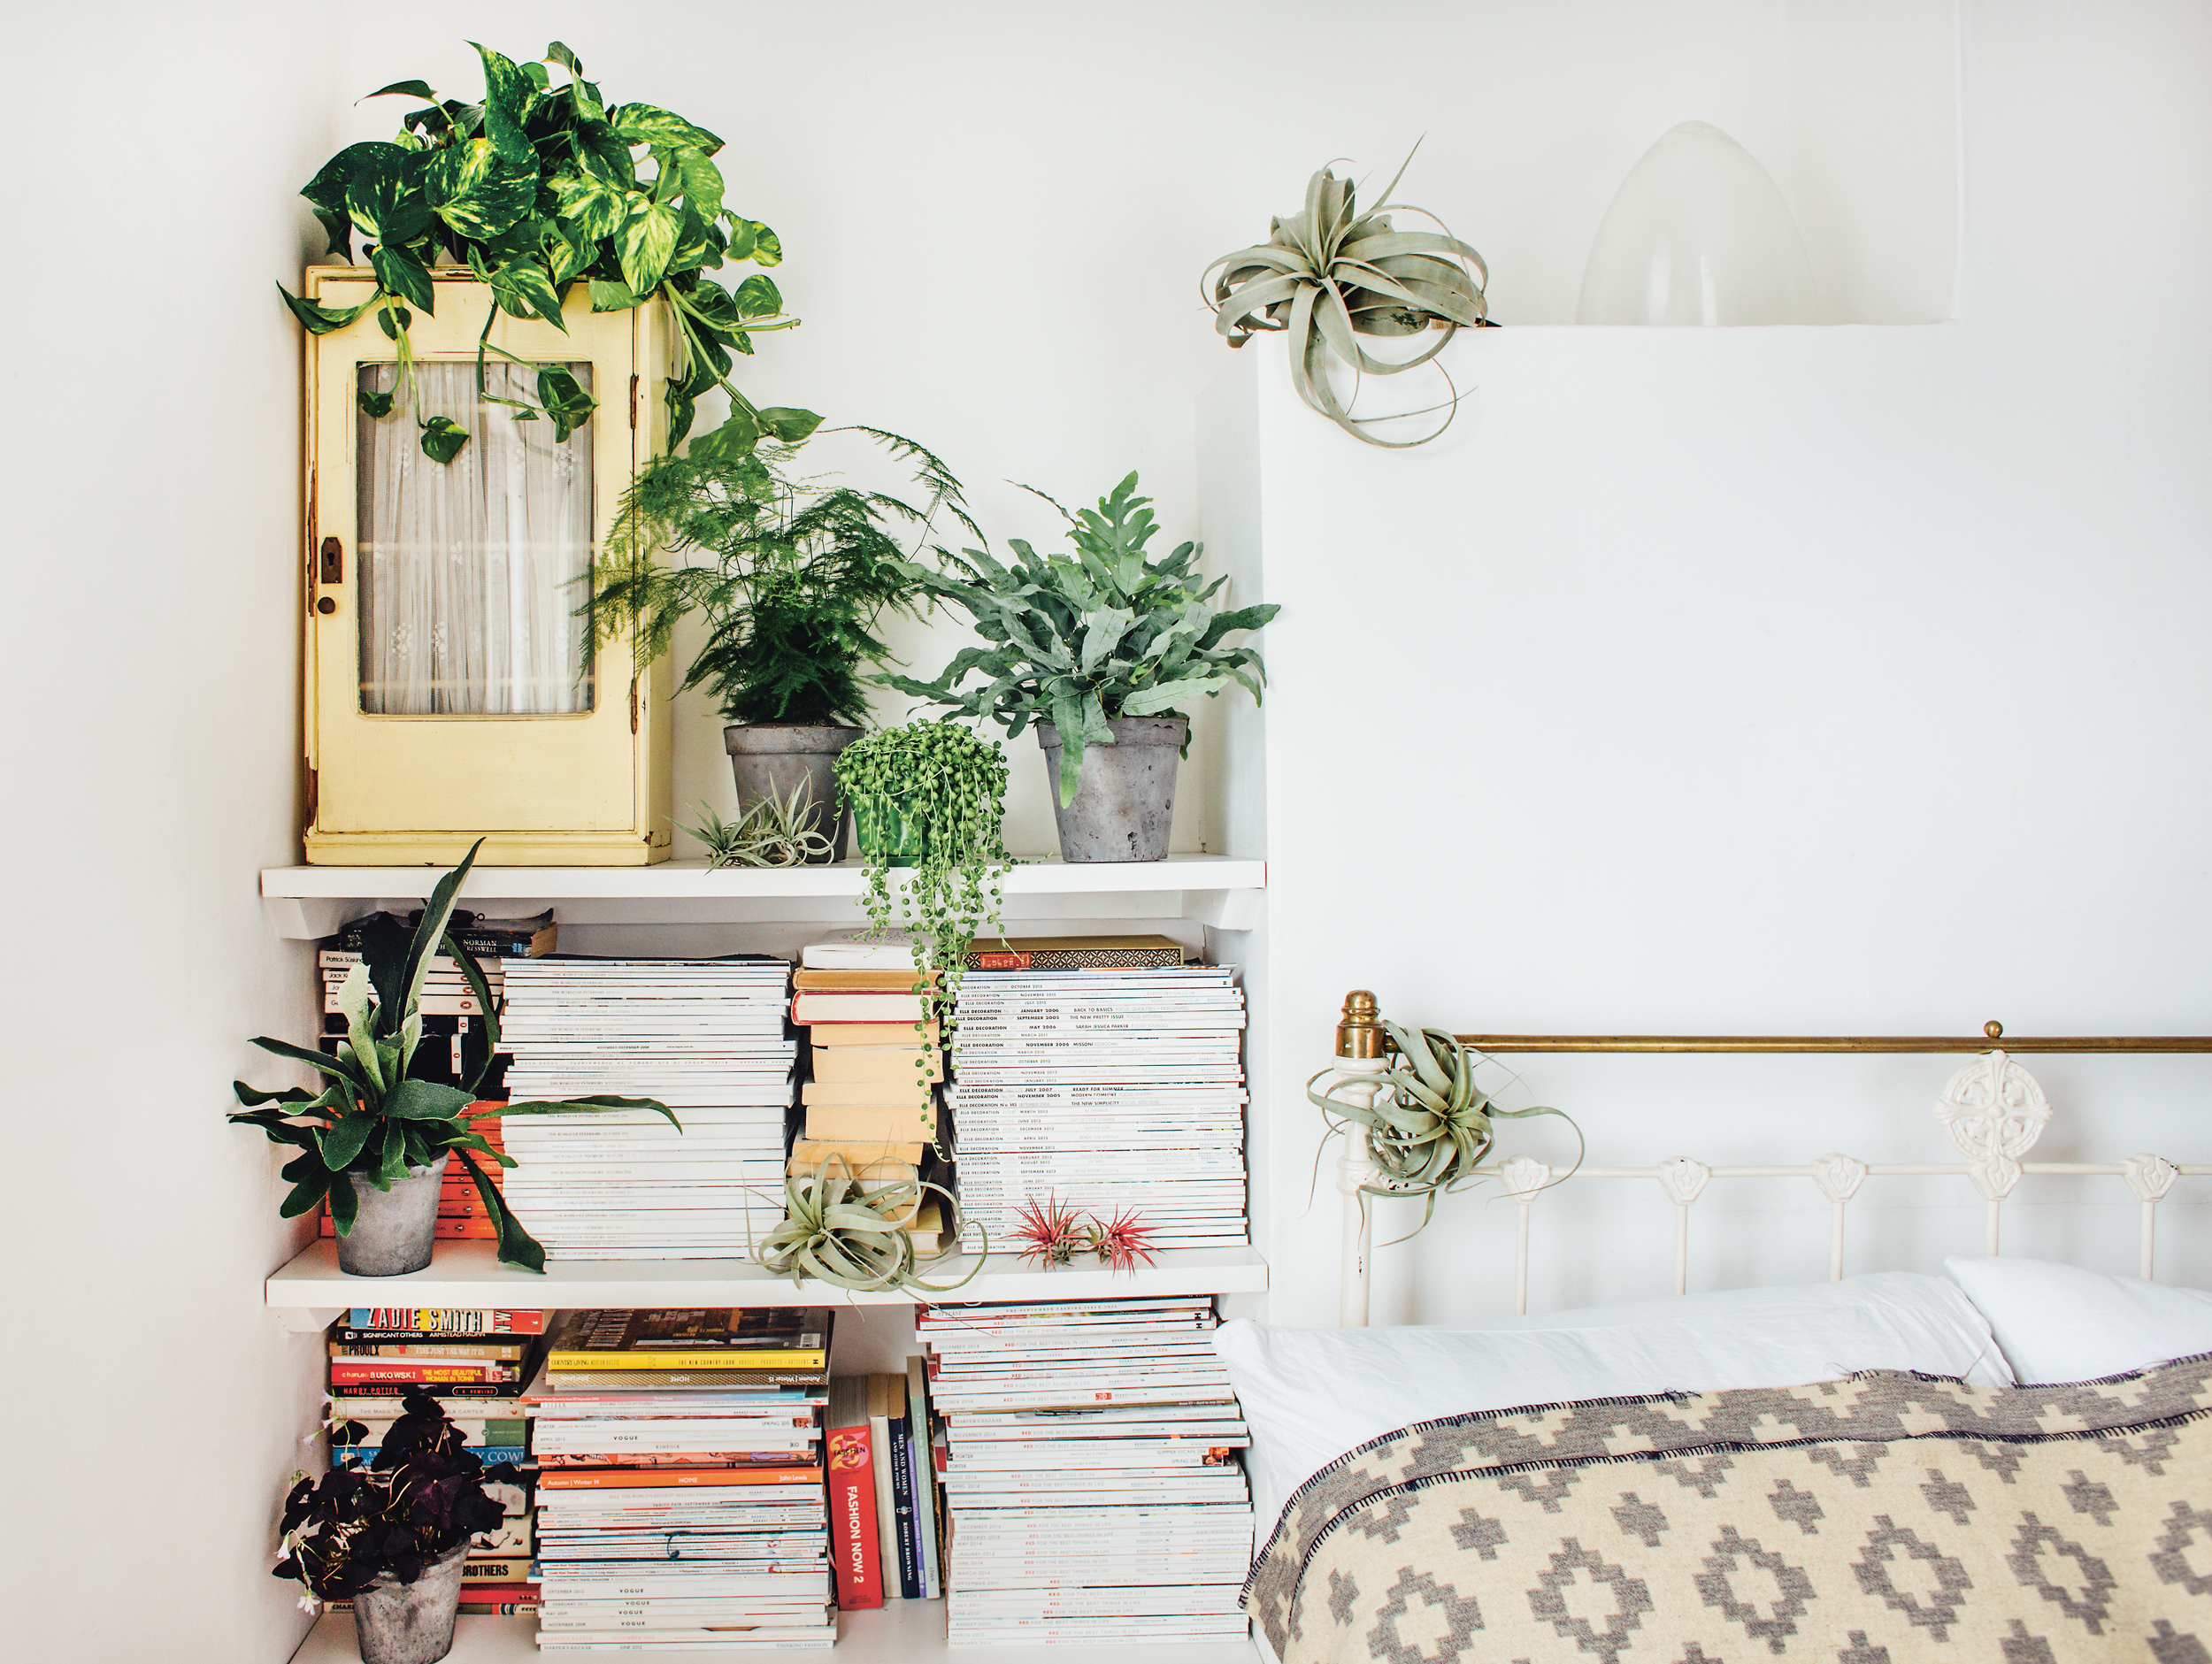 Why Indoor Plants Make You Feel Better